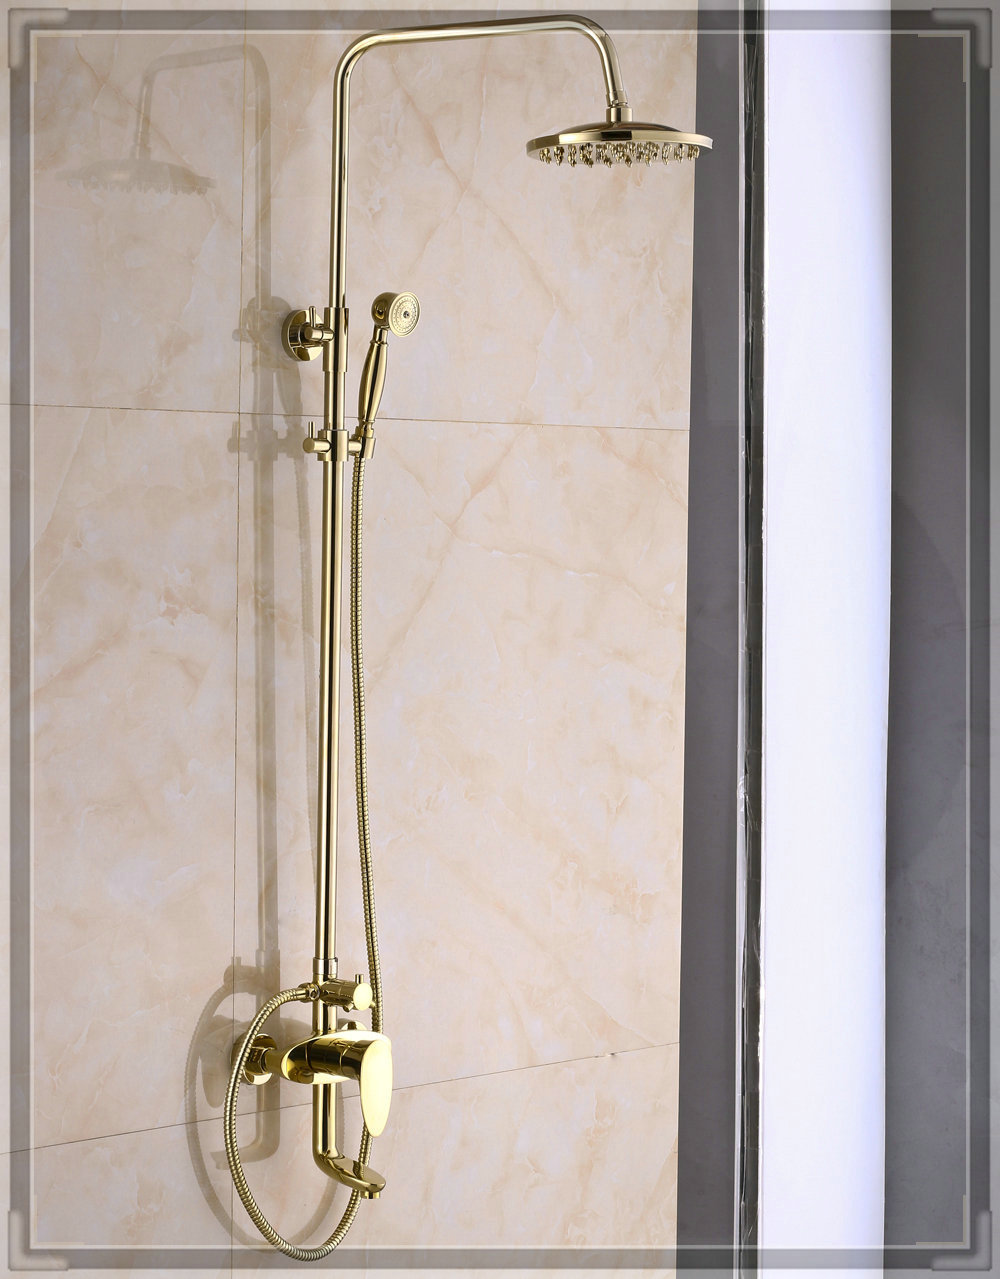 Gold finish bathroom rainfall shower faucet system swivel for Bathroom faucet finishes